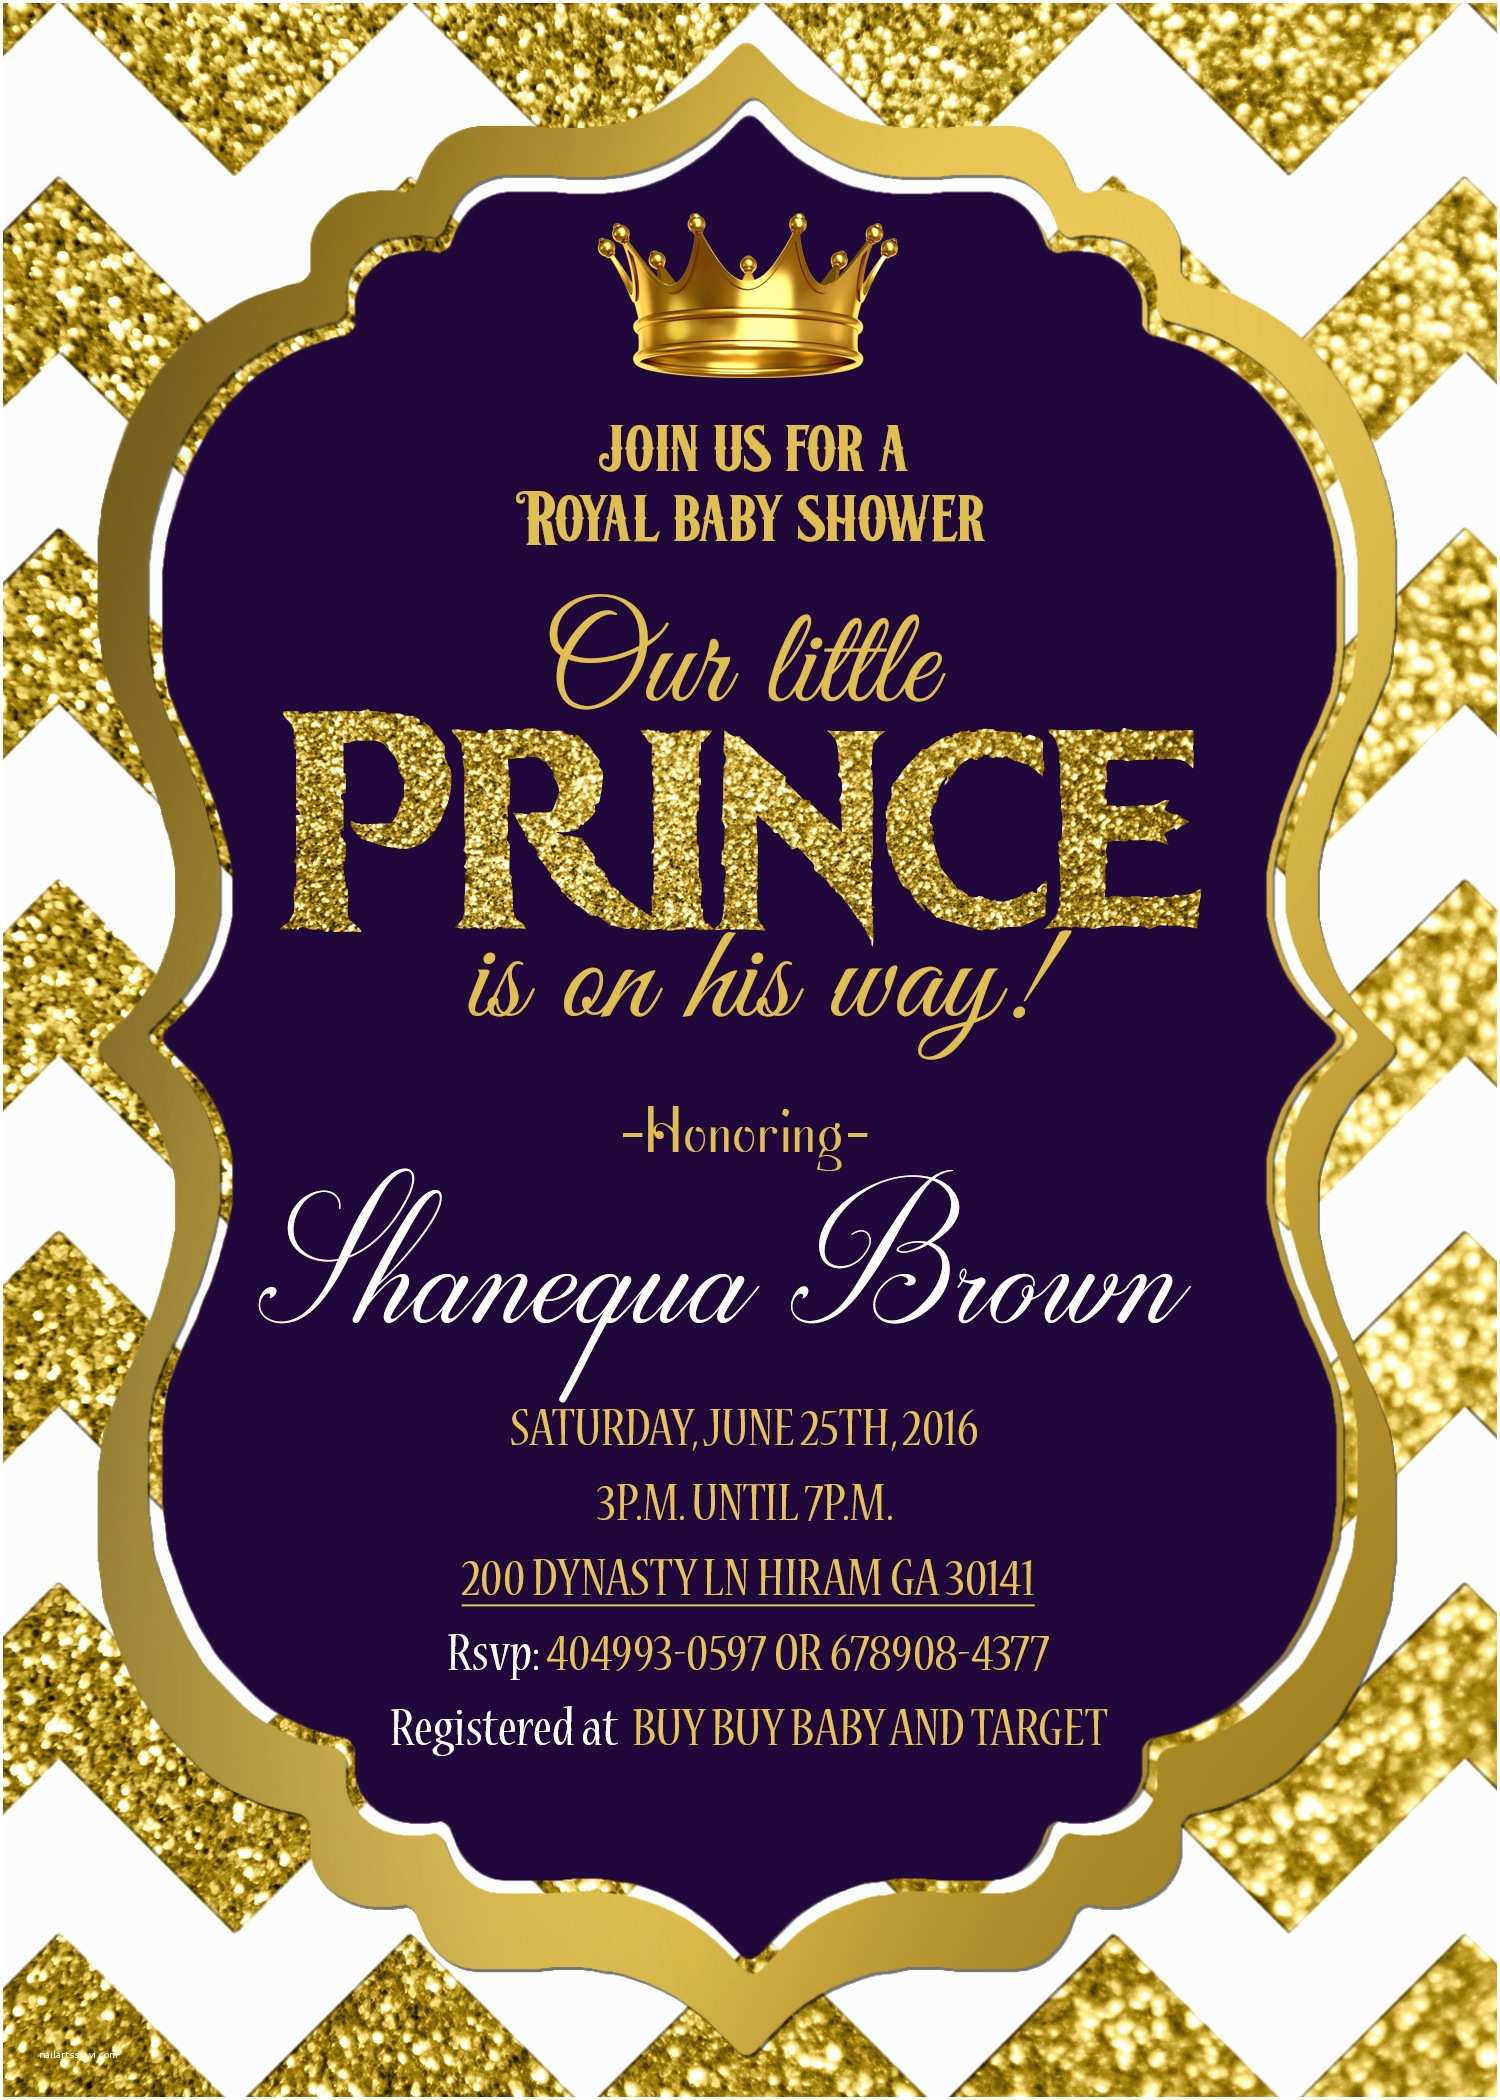 Prince Baby Shower Invitations Blue and Chevron Stripes Background for Prince Baby Shower